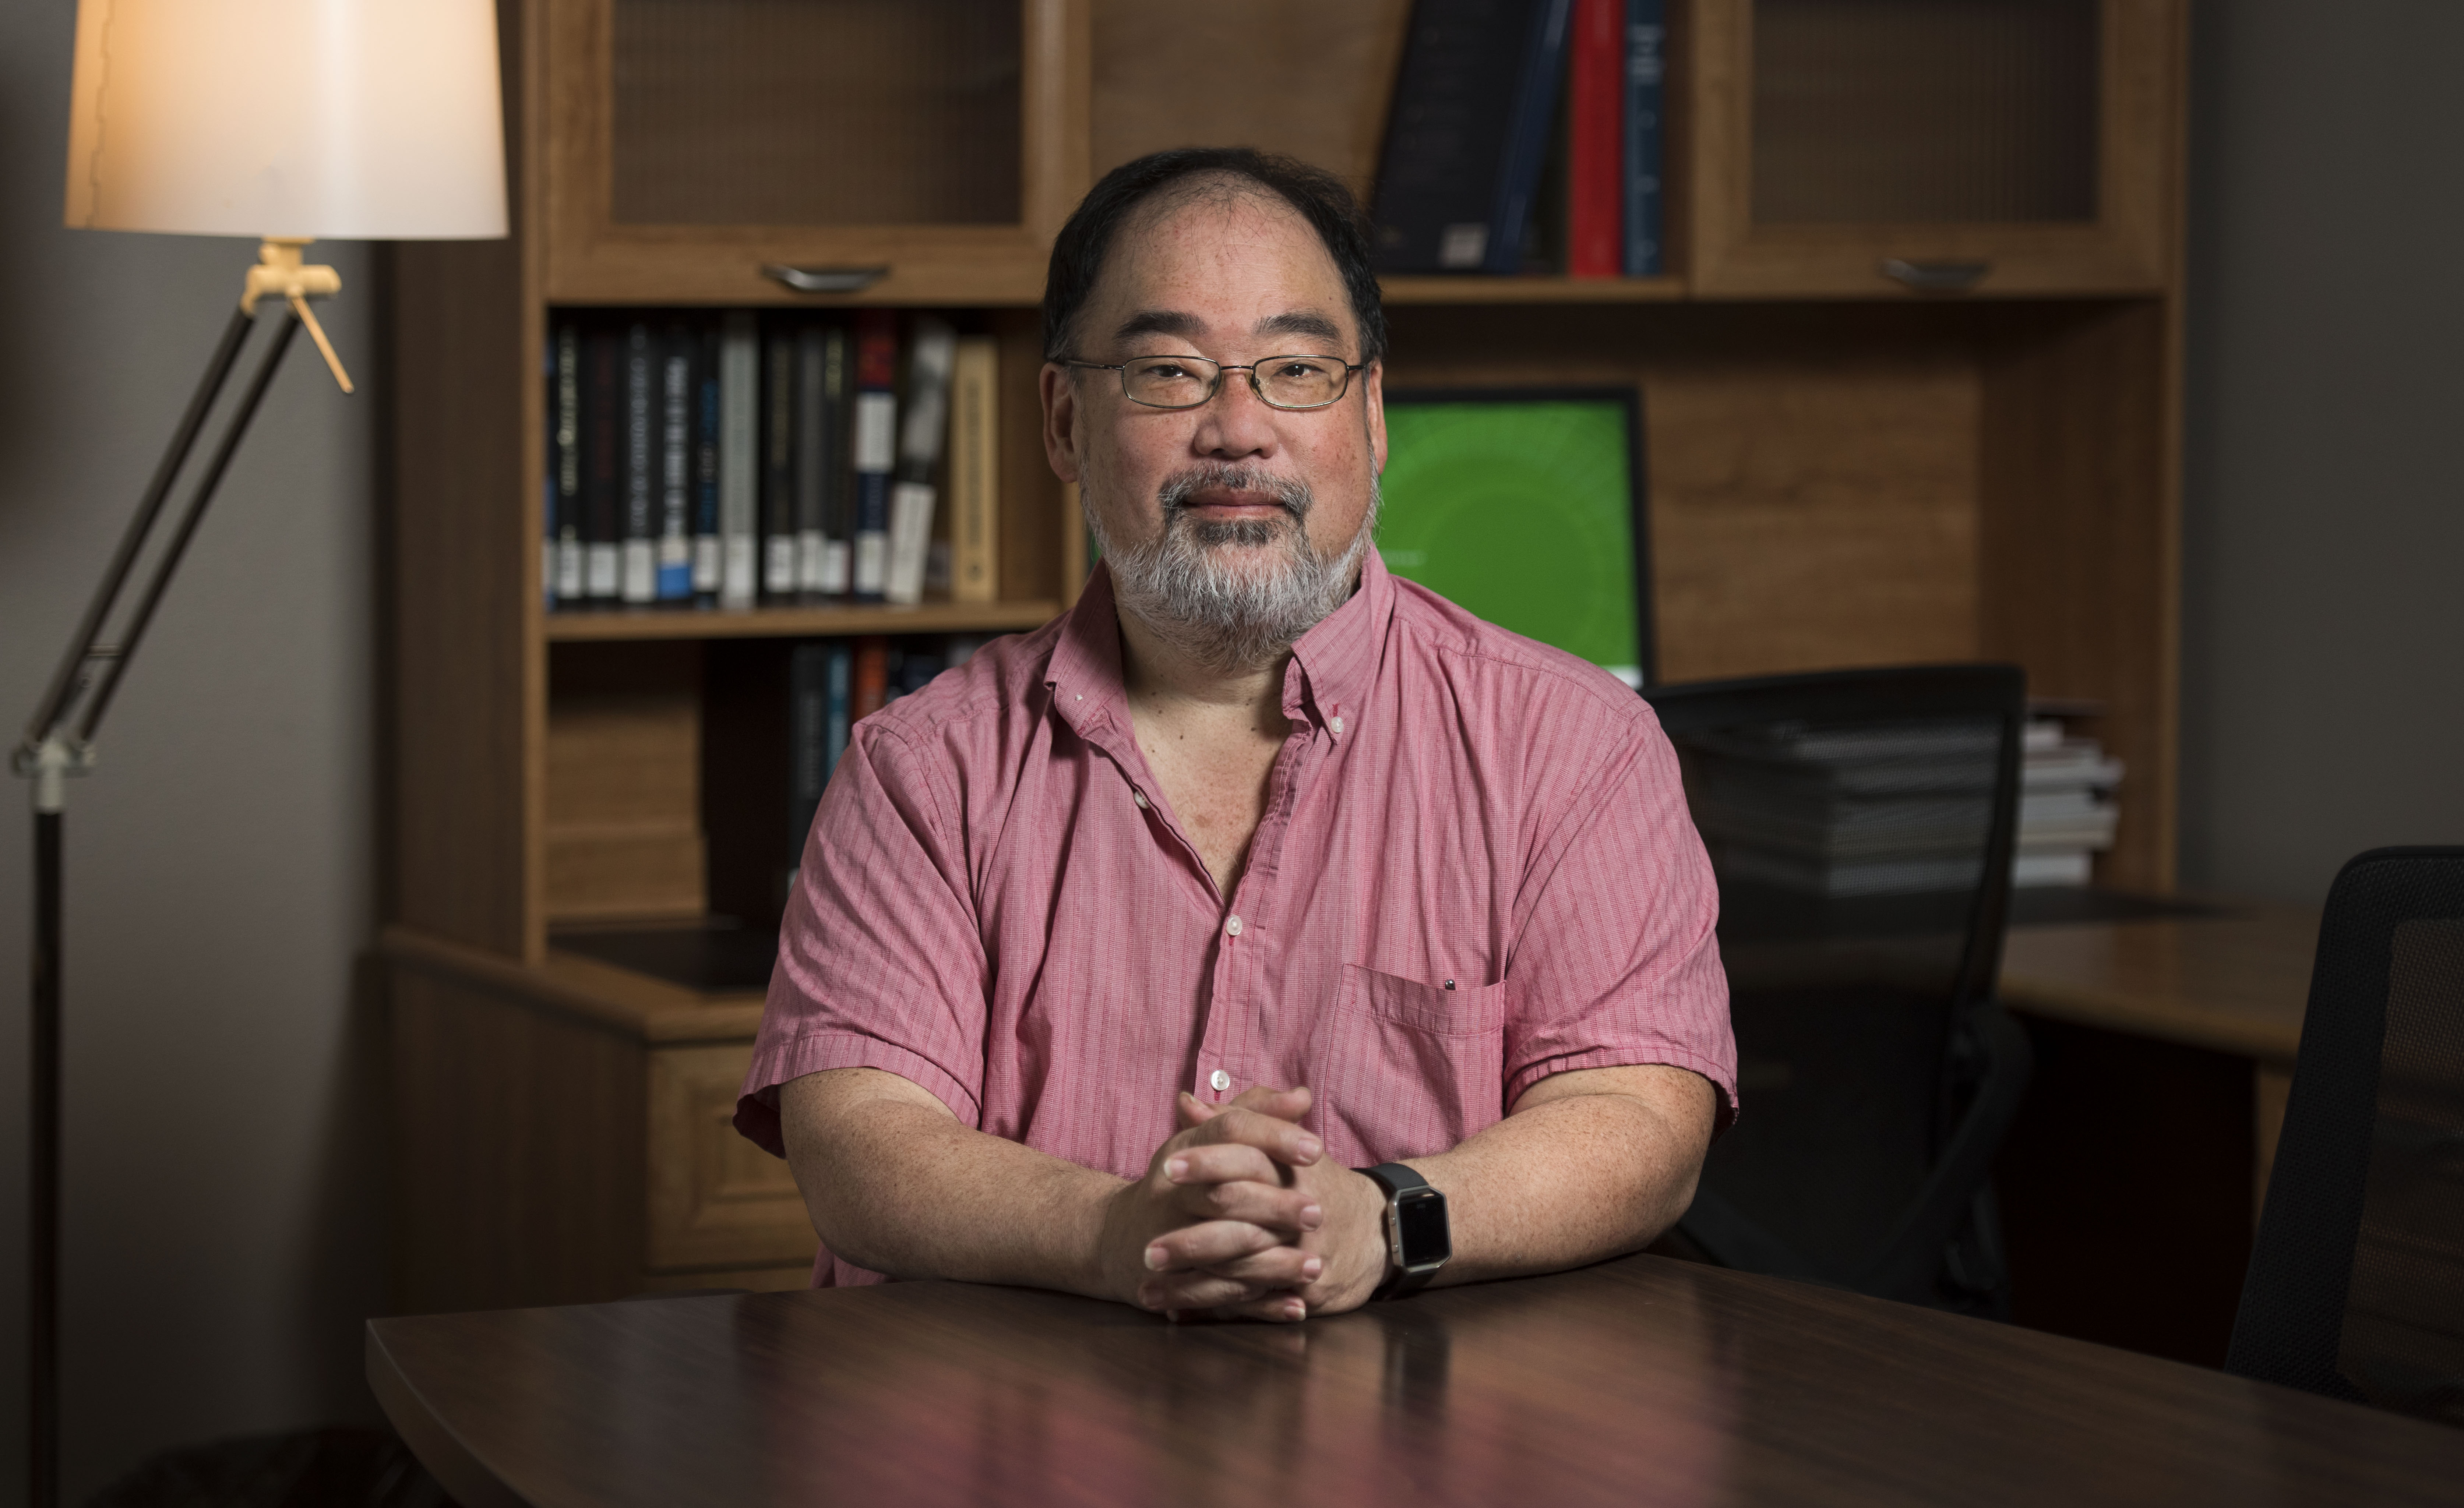 John Ishiyama, University Distinguished Research Professor in the University of North Texas Department of Political Science, has been named a 2017 Minnie Piper Professor. The statewide honor recognizes exceptional teaching by college and university faculty members.